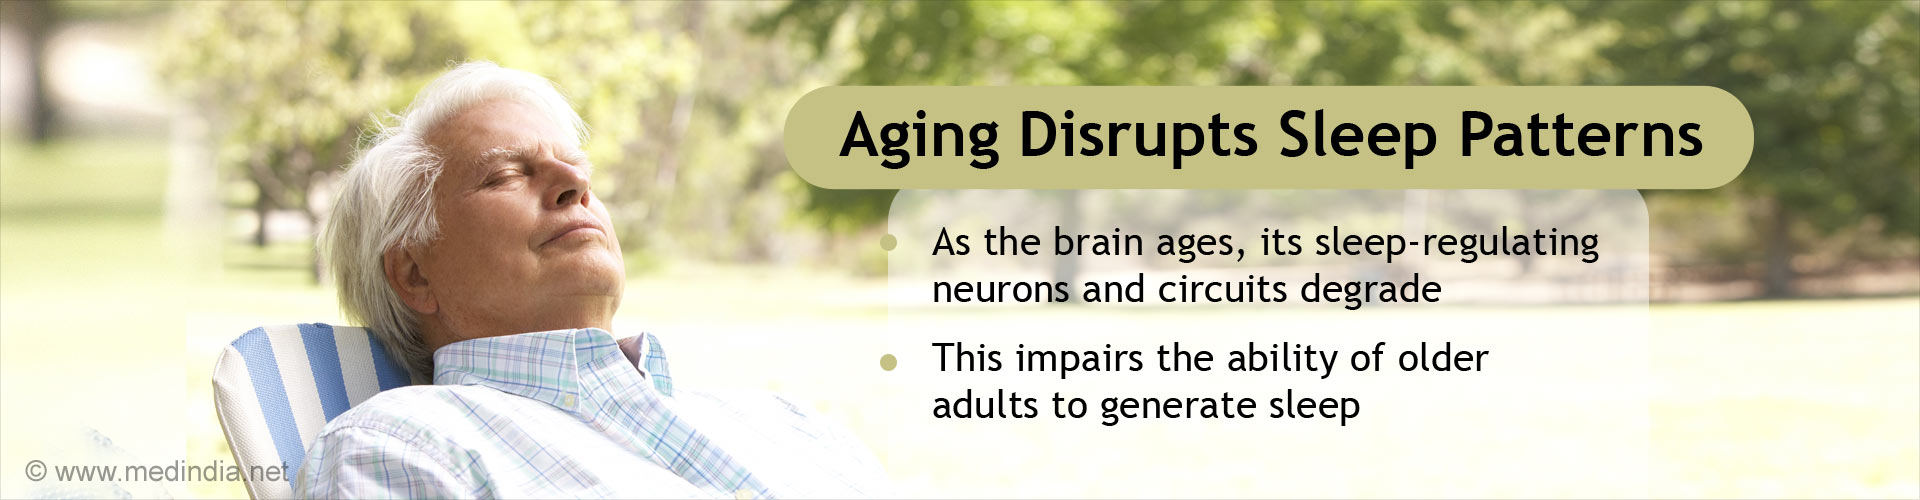 Aging Disrupts Sleep Patterns - As the brain ages, its sleep-regulating neurons and circuits degrade - This impairs the ability of older adults to generate sleep